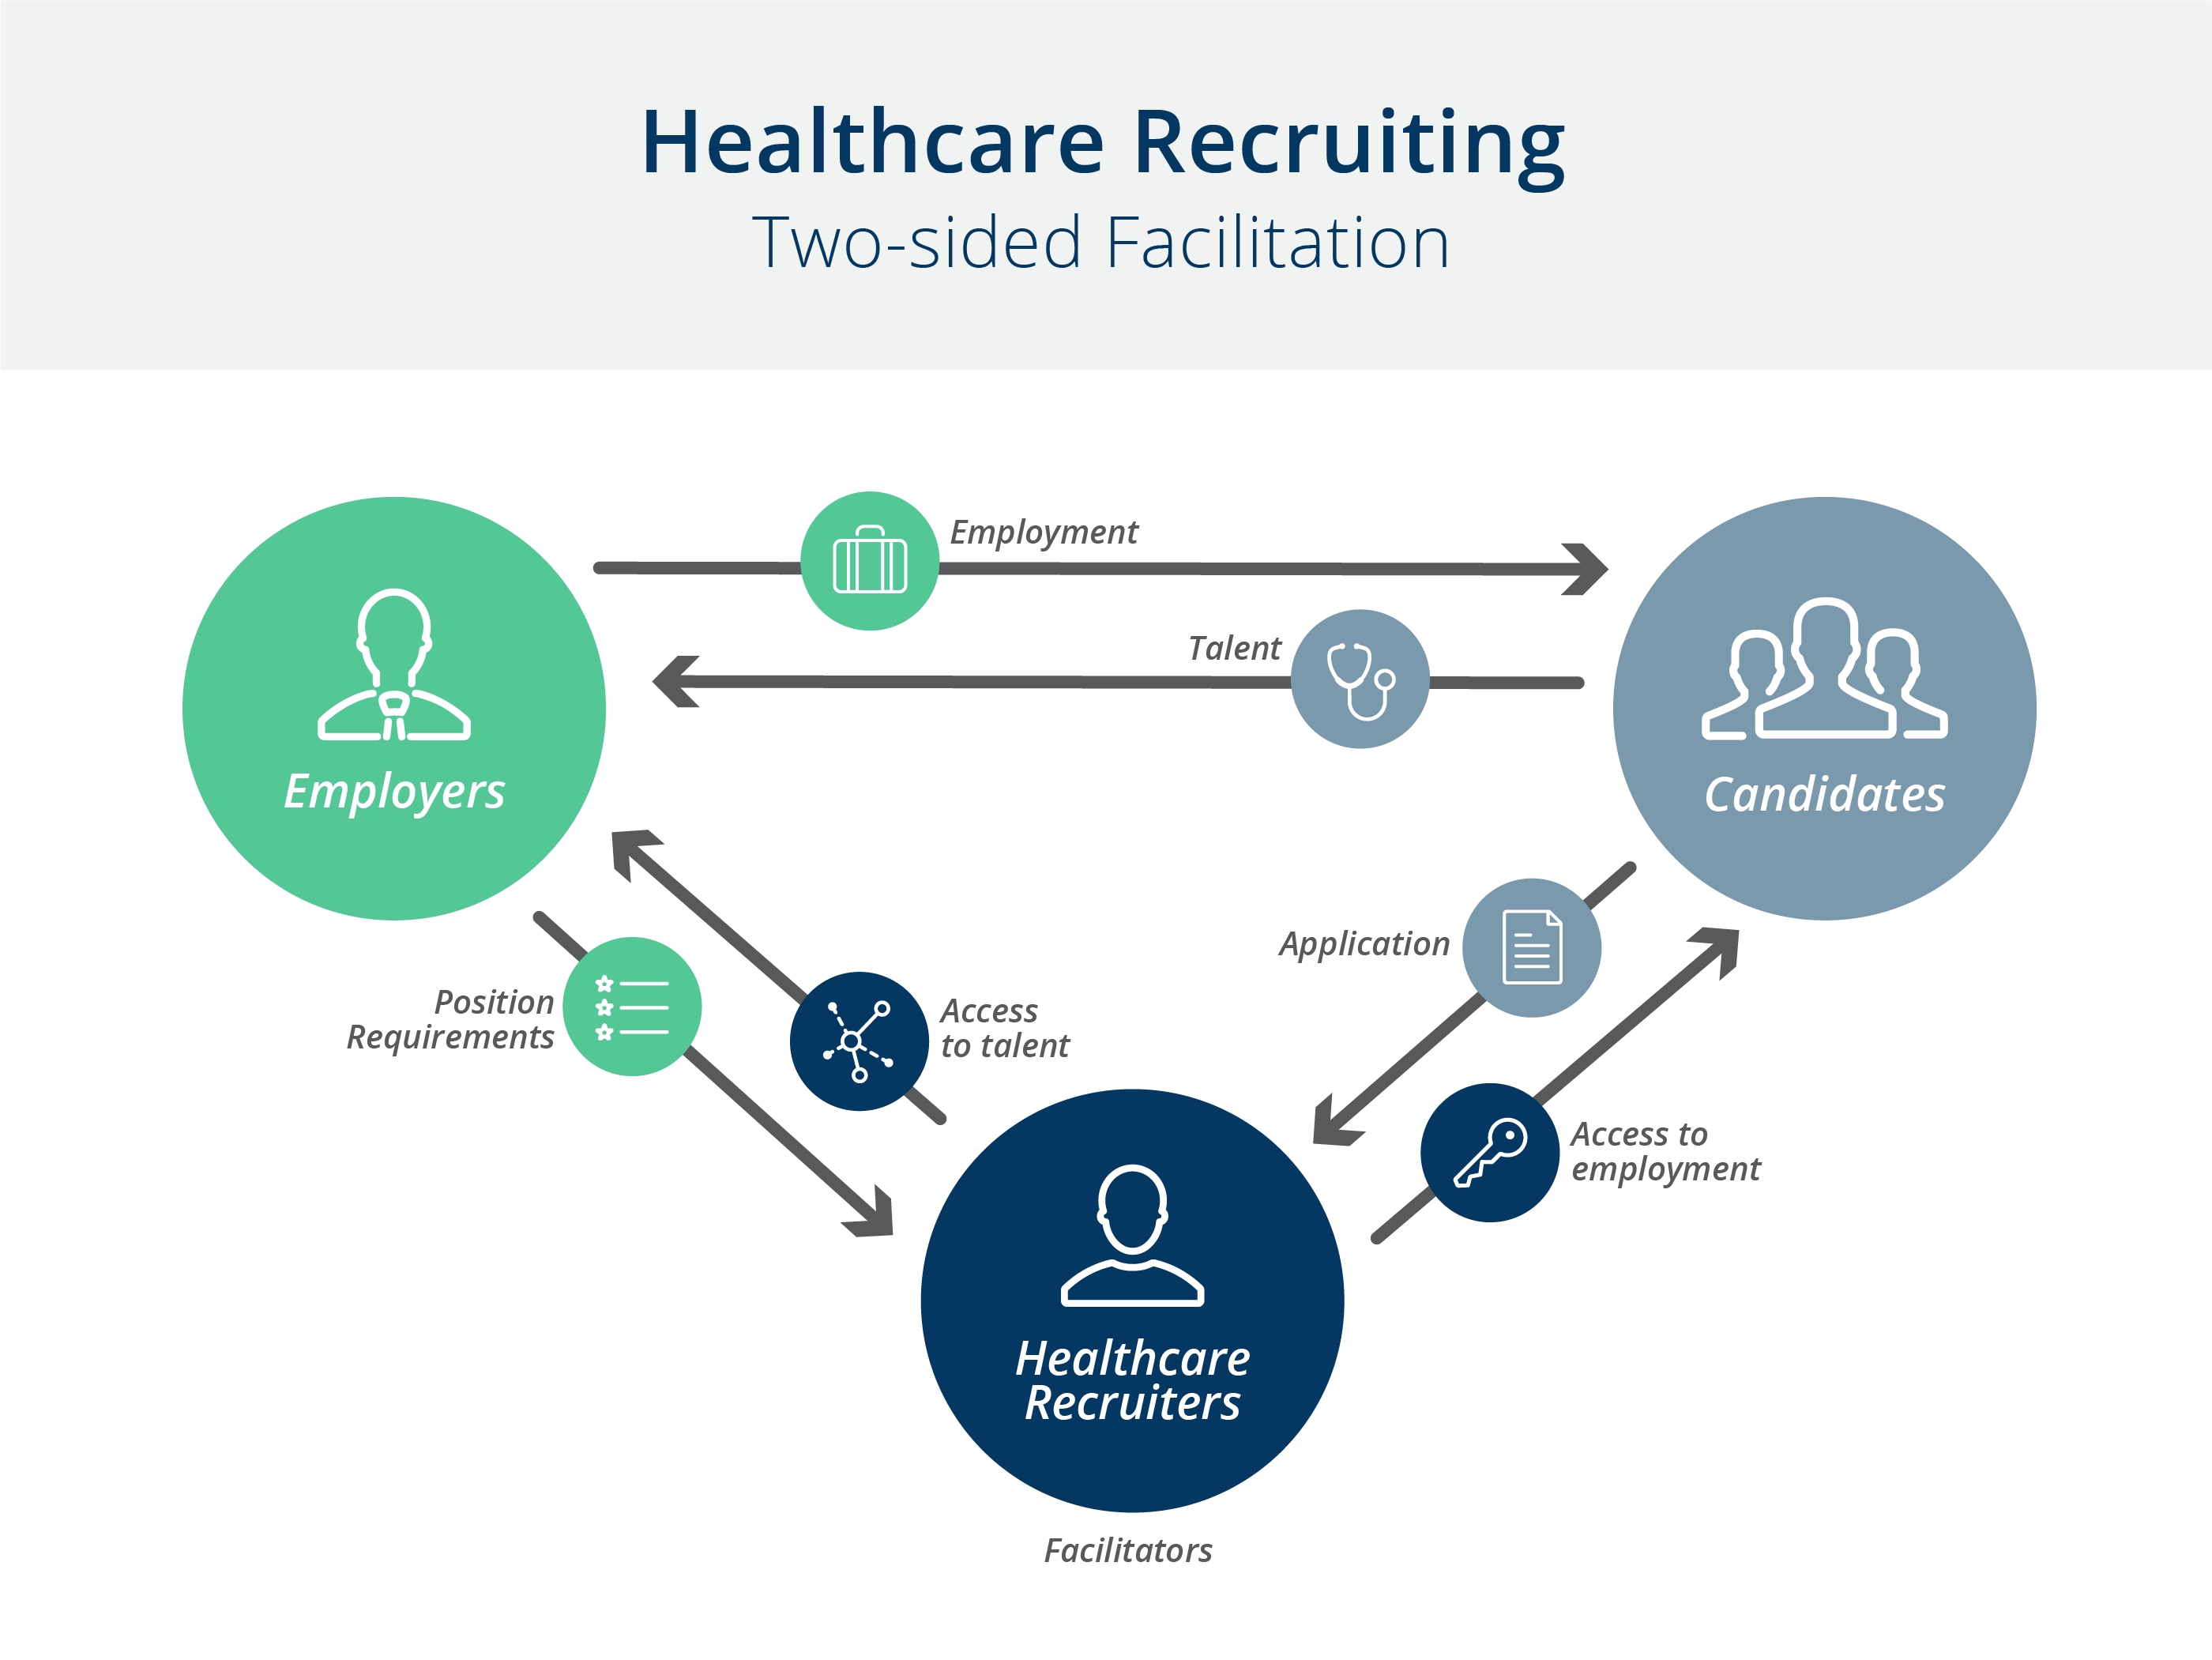 Healthcare recruiting business strategy